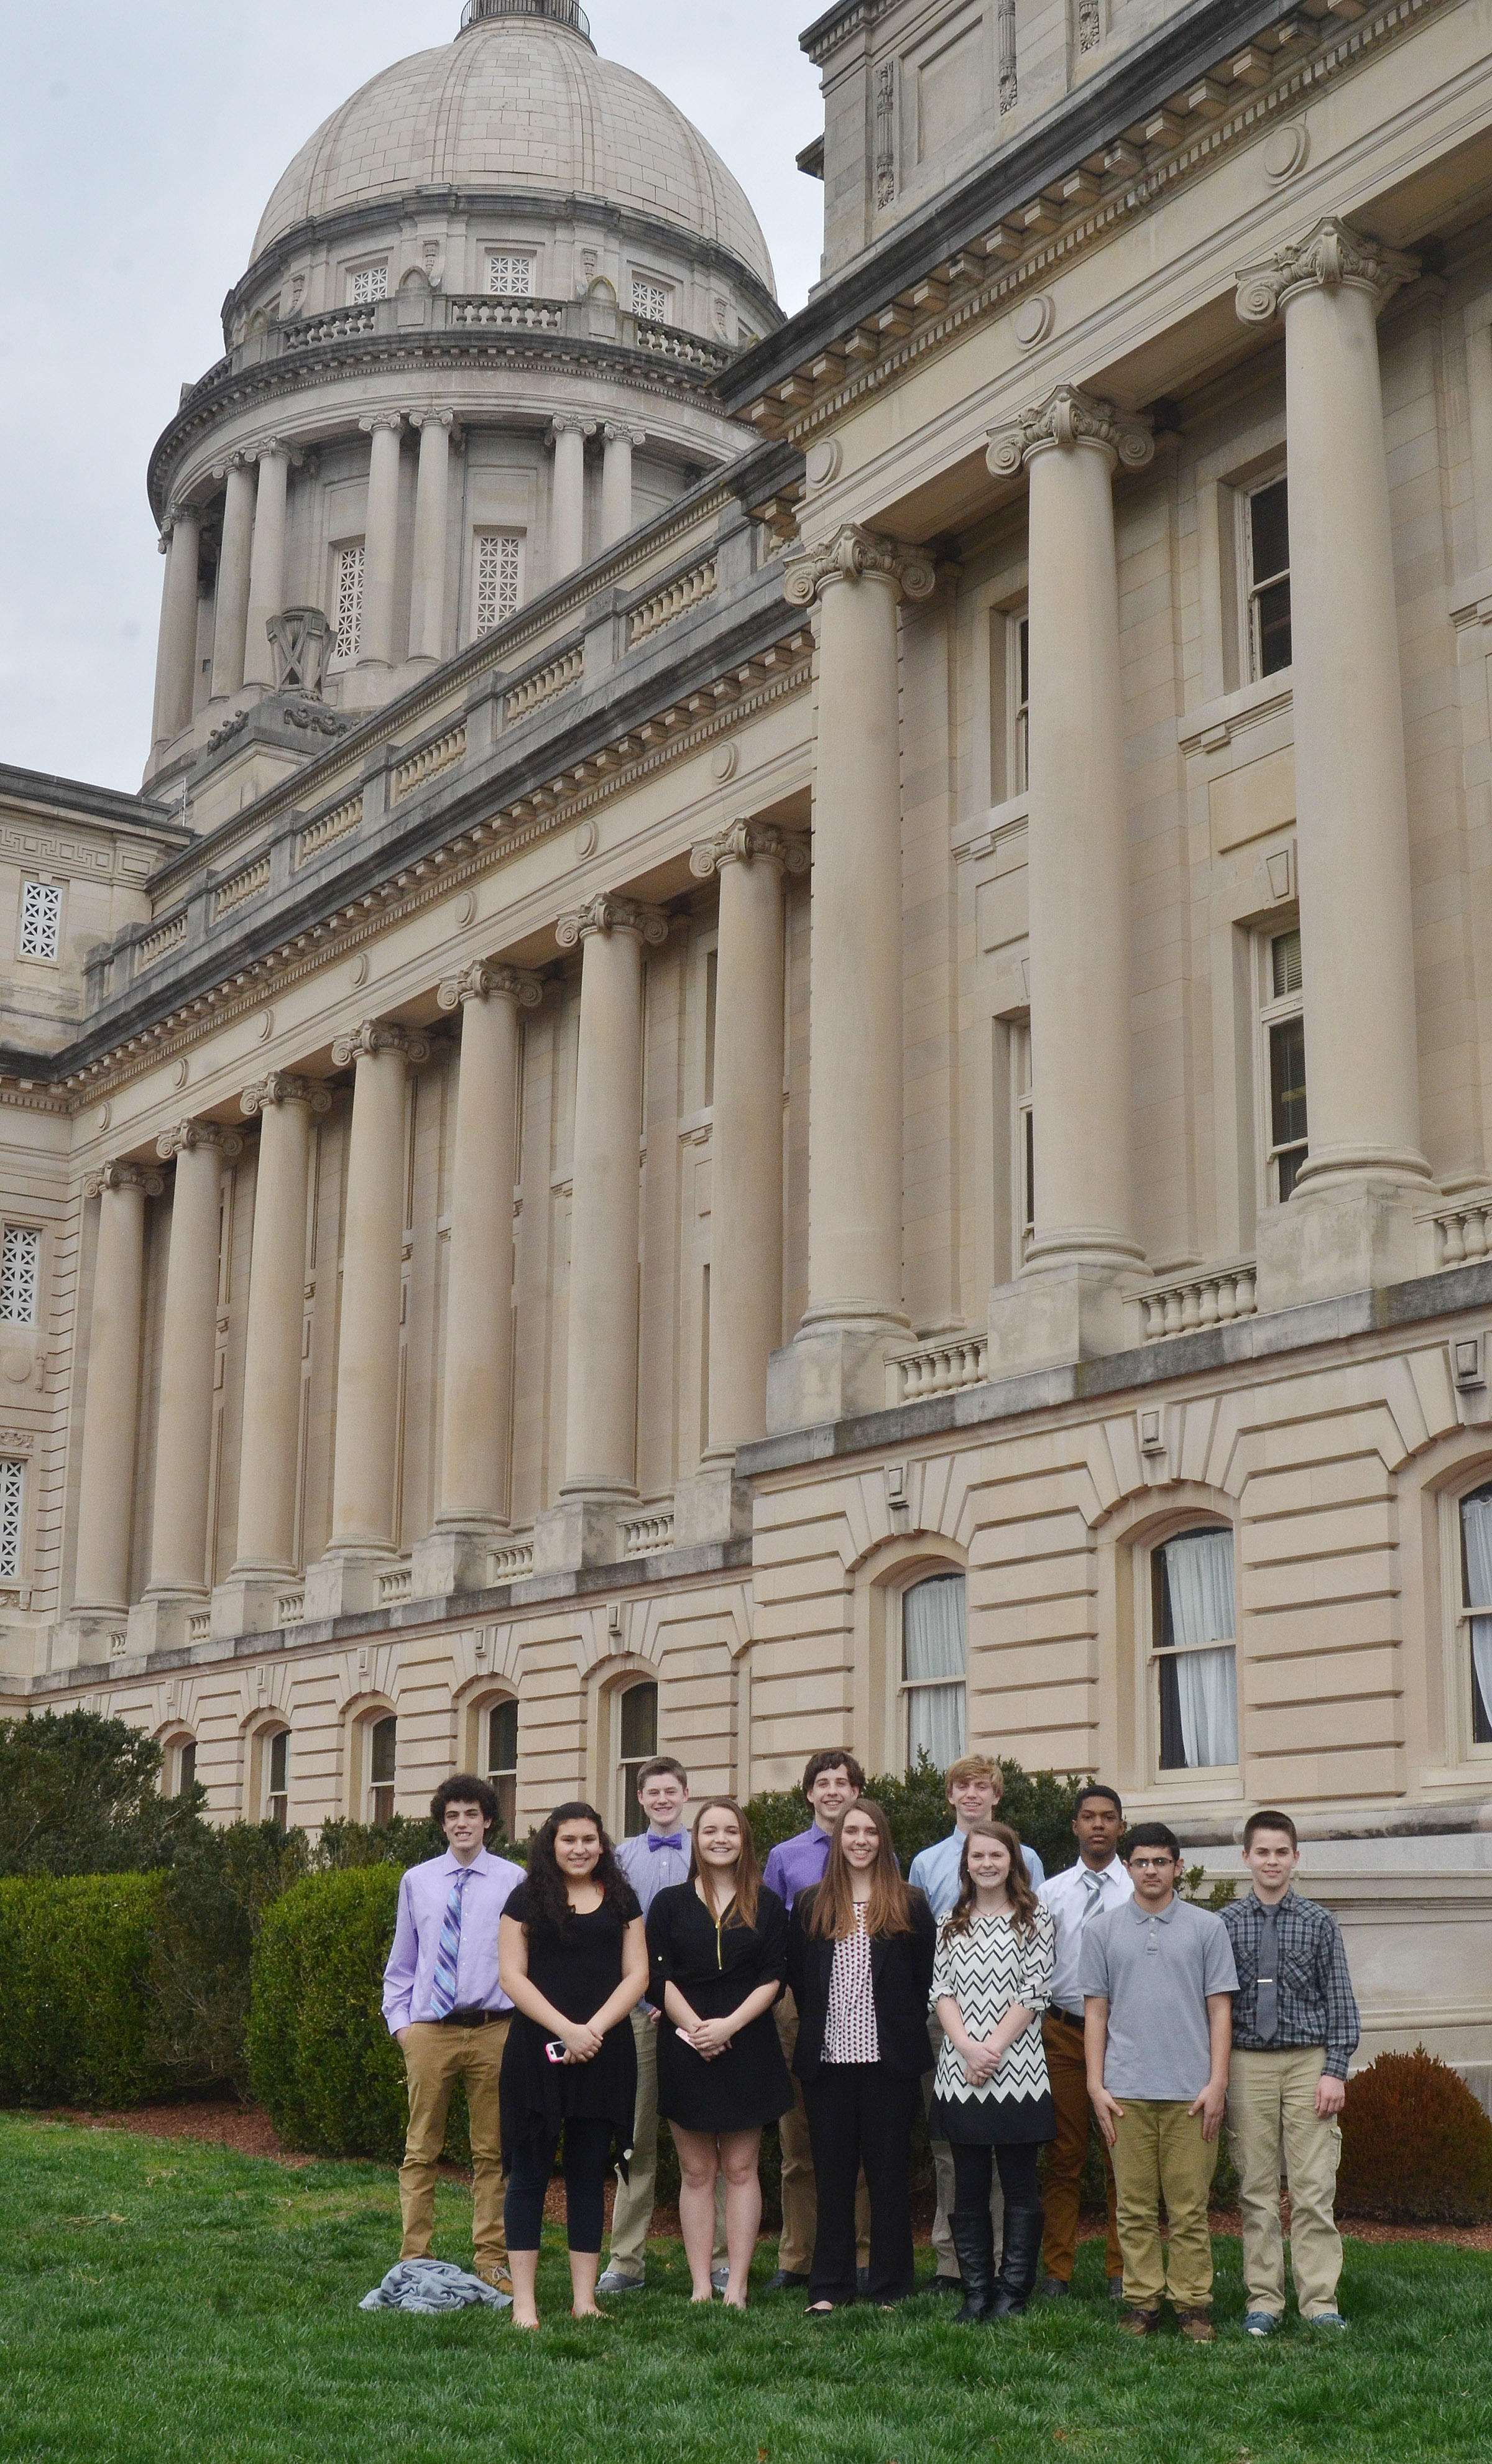 CMS CU leadership students pose for a photo outside the Kentucky capitol. From left, front, are Anna Clara Moura, Kenzi Forbis, Abi Wiedewitsch, Taylor Knight, Hassan Alabusalim and Clark Kidwell. Back, Kameron Smith, Tristin Faulkner, John Orberson, Arren Hash and Zaquan Cowan.